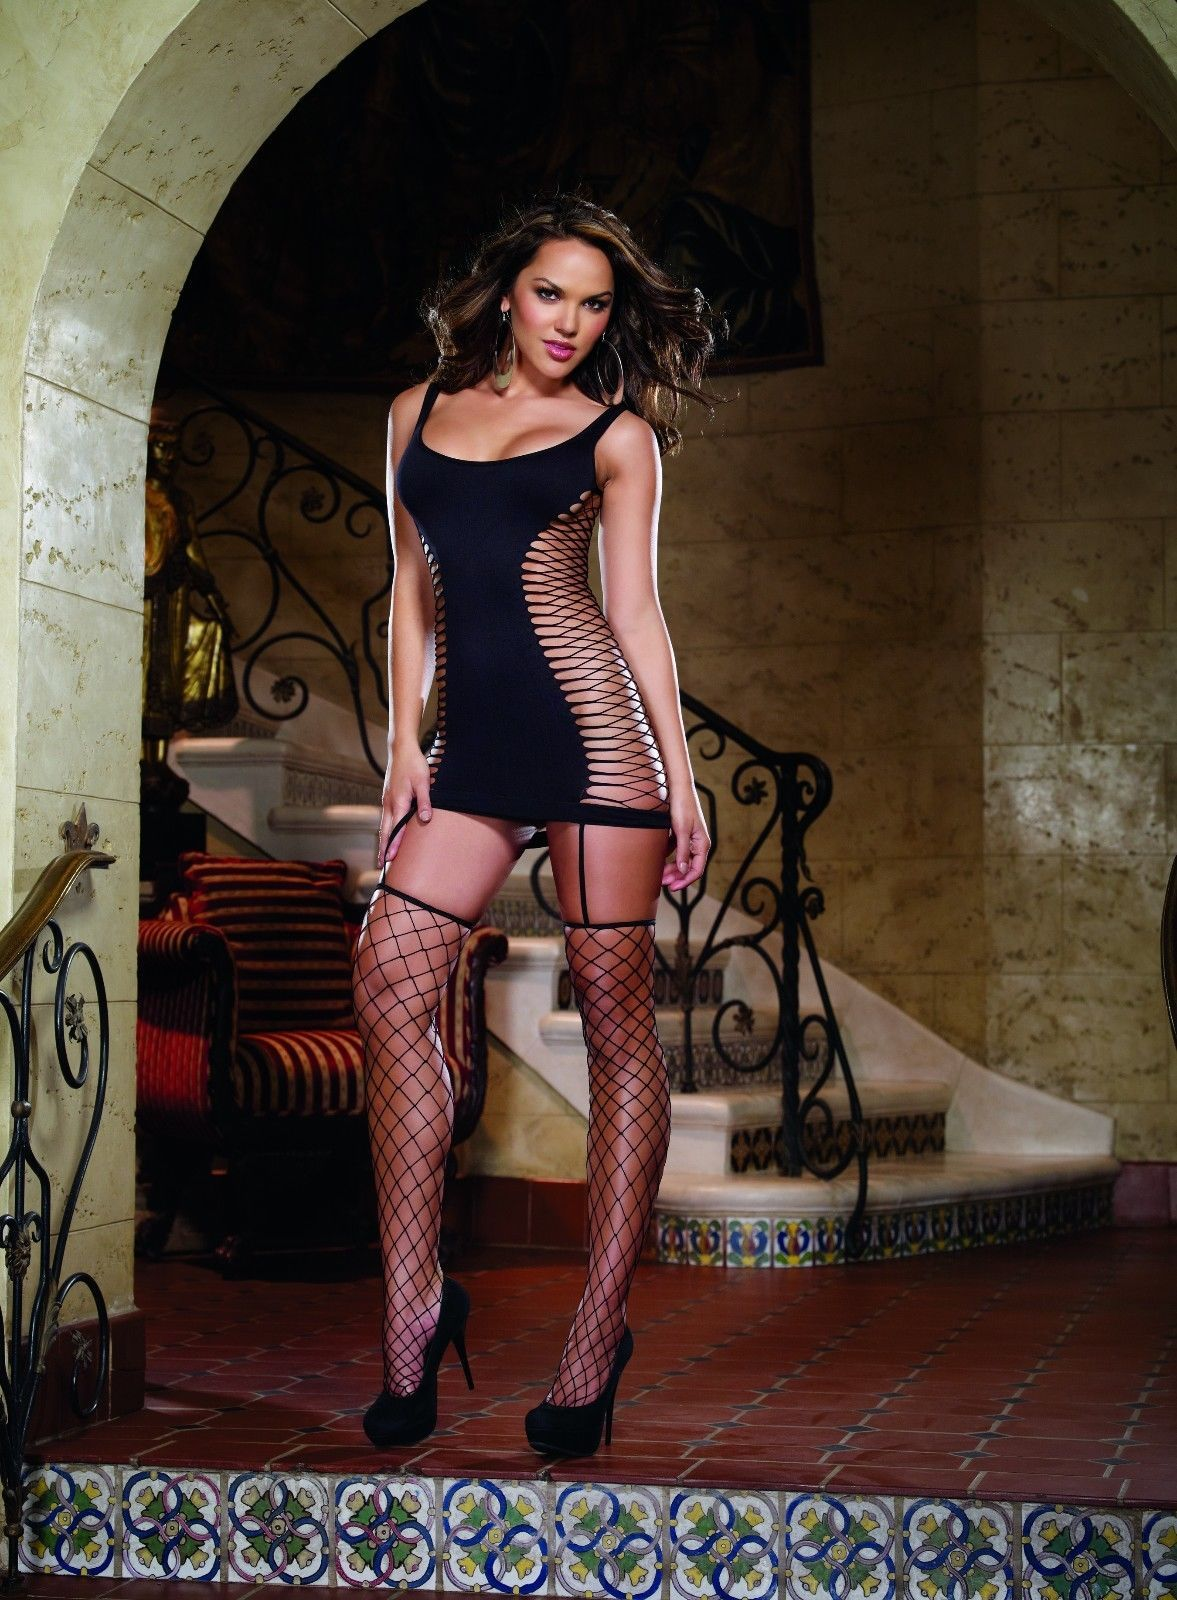 OPAQUE FENCE NET GARTER DRESS BODYSTOCKING ATTACHED THIGH HIGH STOCKINGS OS-QN